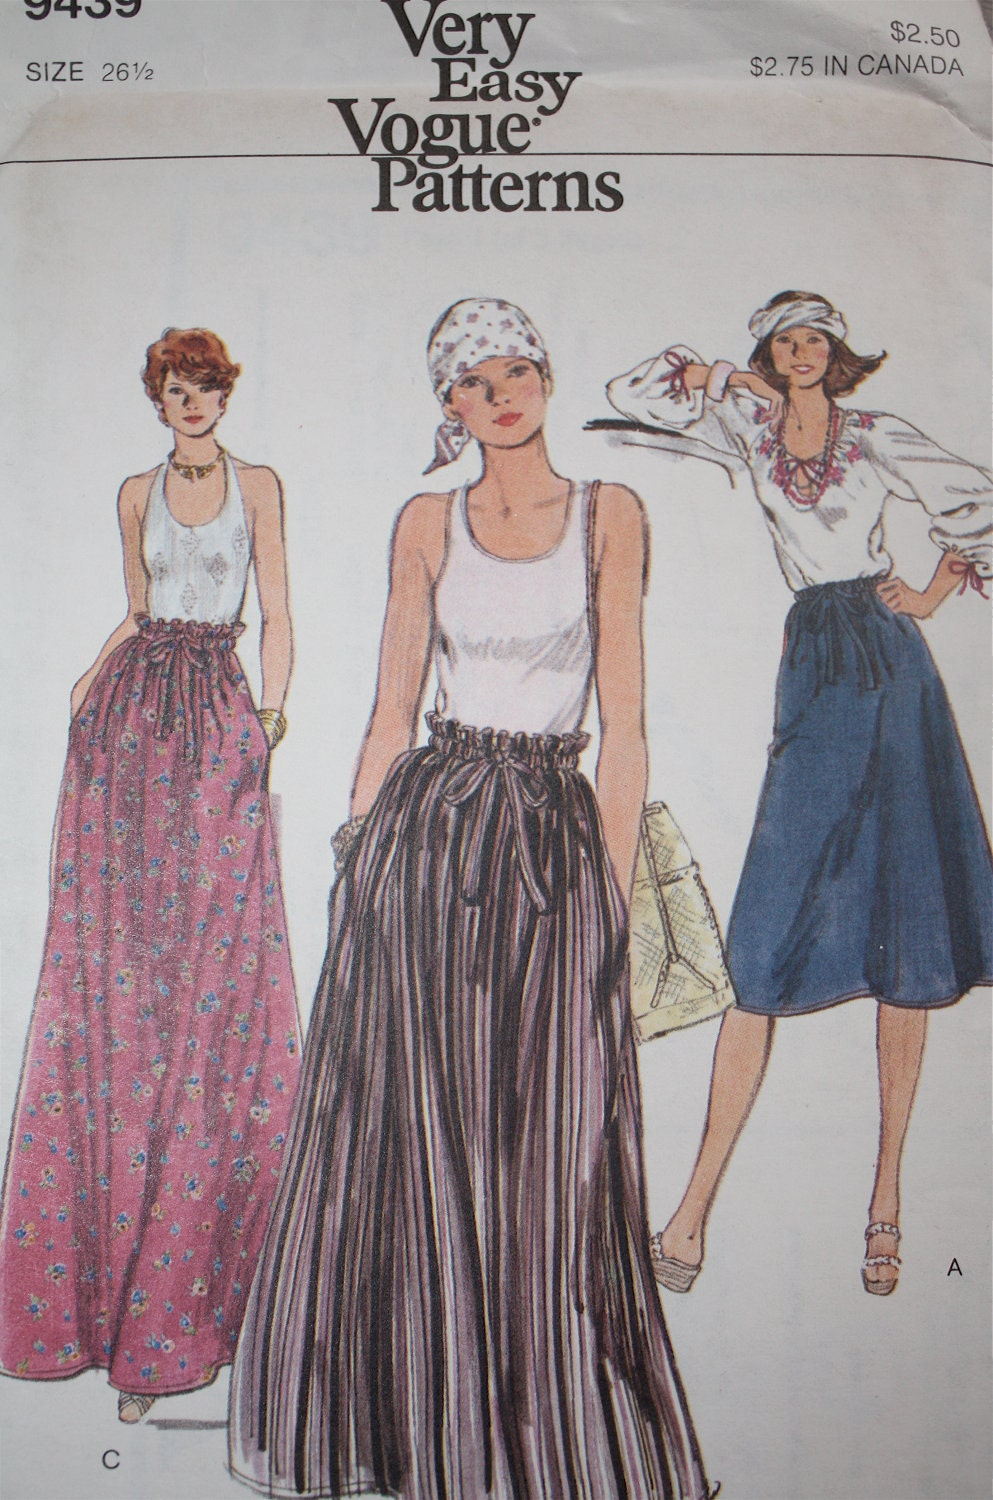 vintage vogue maxi skirt pattern 9439